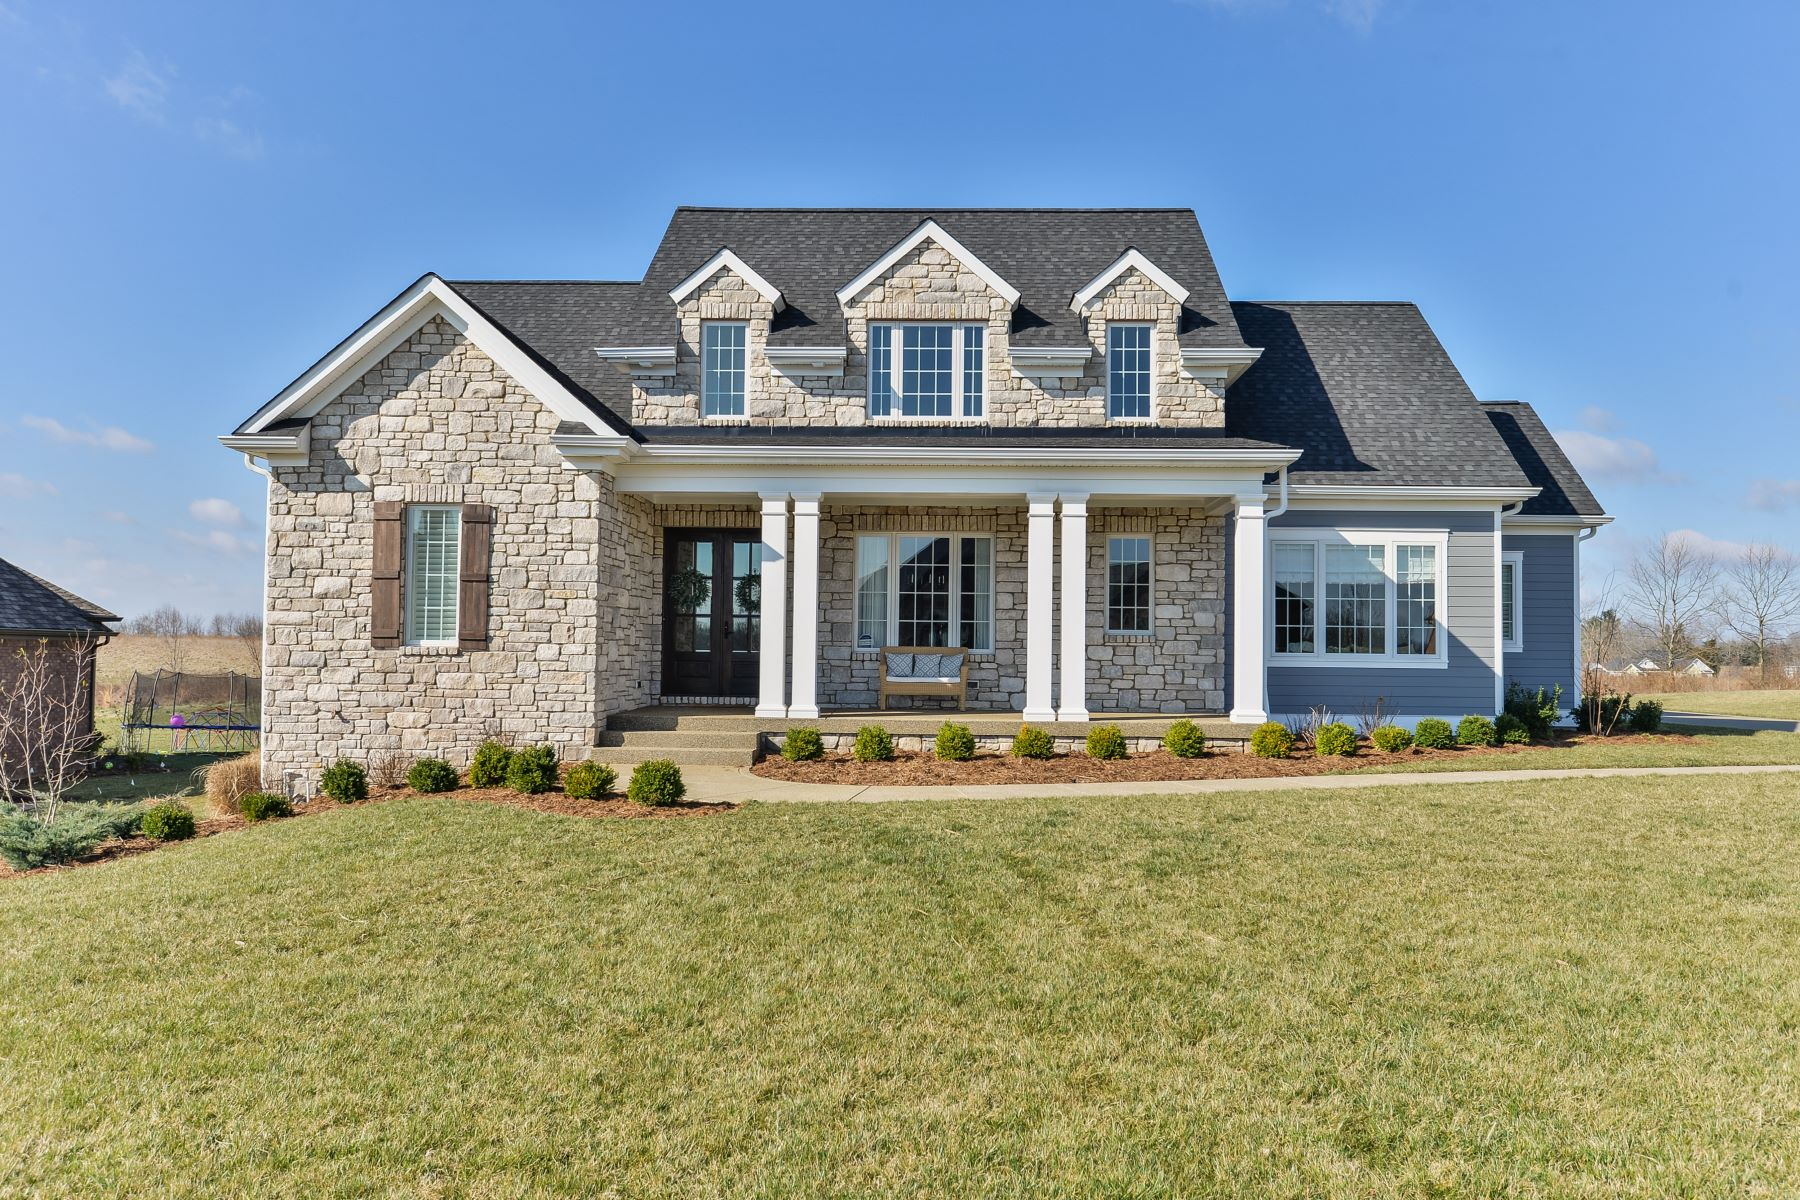 Single Family Home for Sale at 12422 Poplar Woods Drive 12422 Poplar Woods Drive Goshen, Kentucky 40026 United States